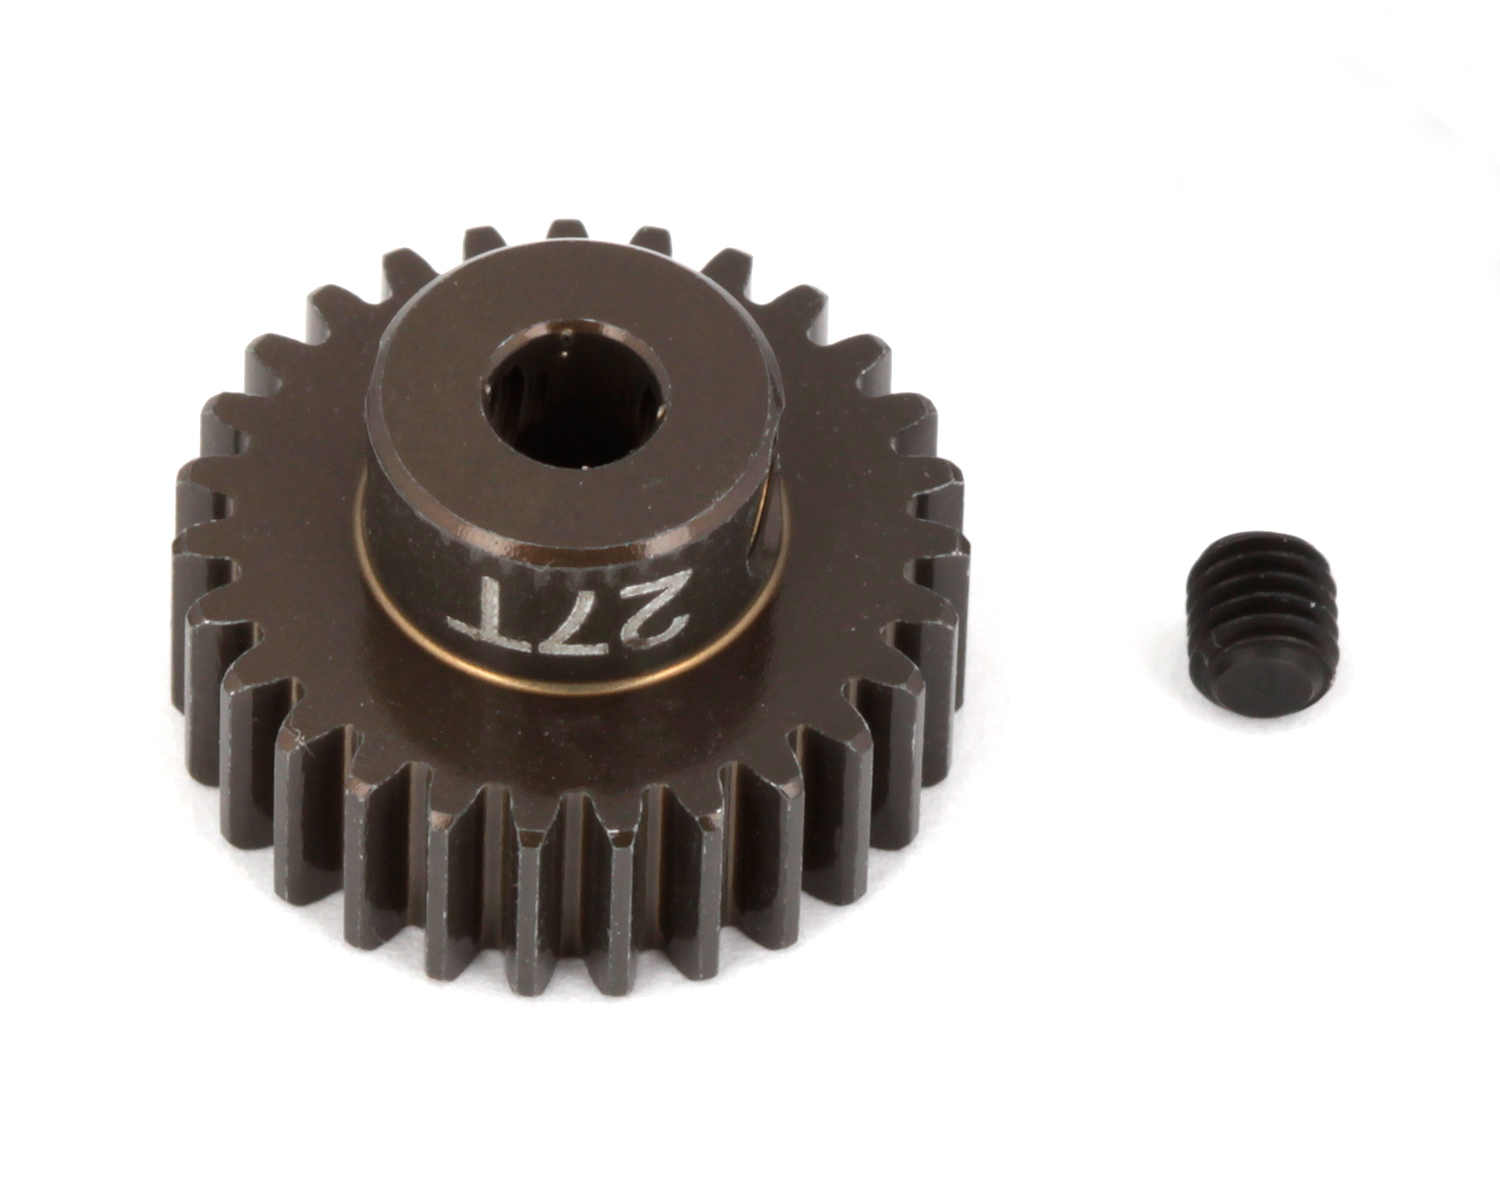 ASC1345 FT Aluminum Pinion Gear, 27T 48P, 1/8 shaft